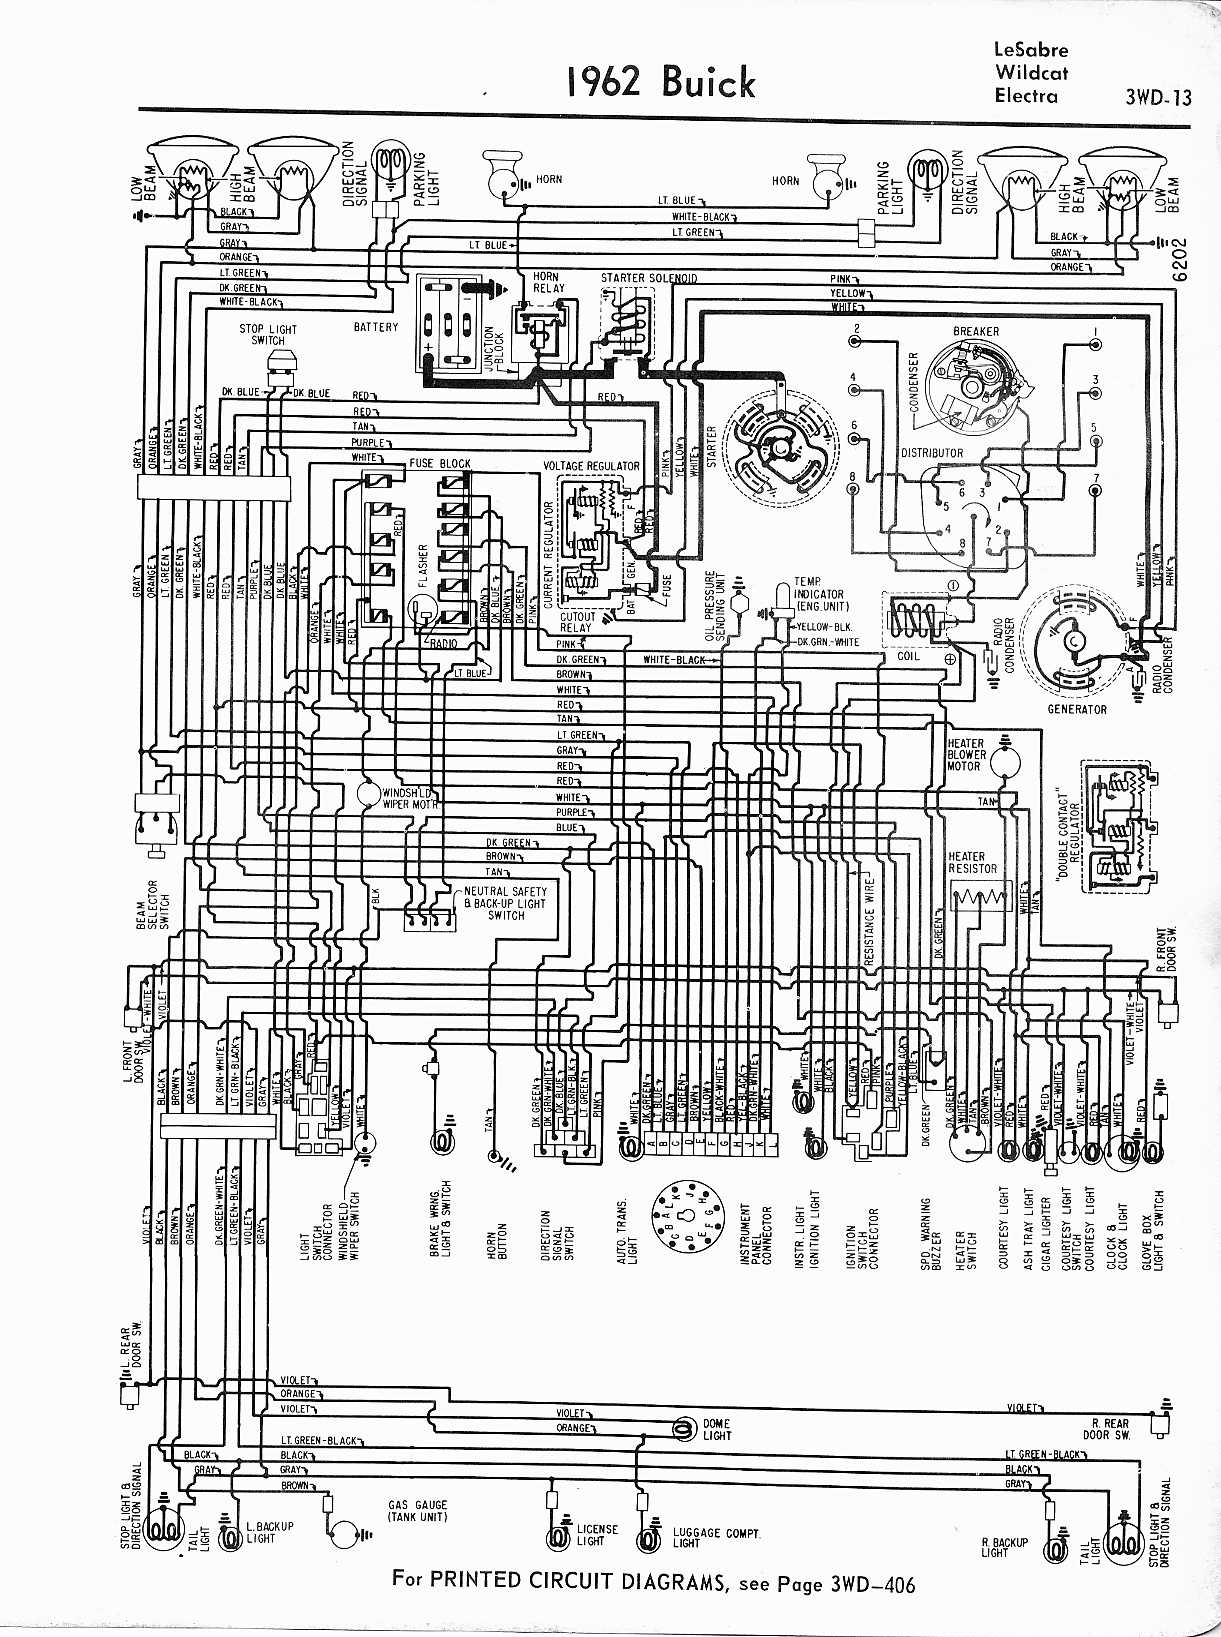 1953 Buick Starter Solenoid Wiring Diagram Electrical How To Wire A 53 Ford Images Gallery